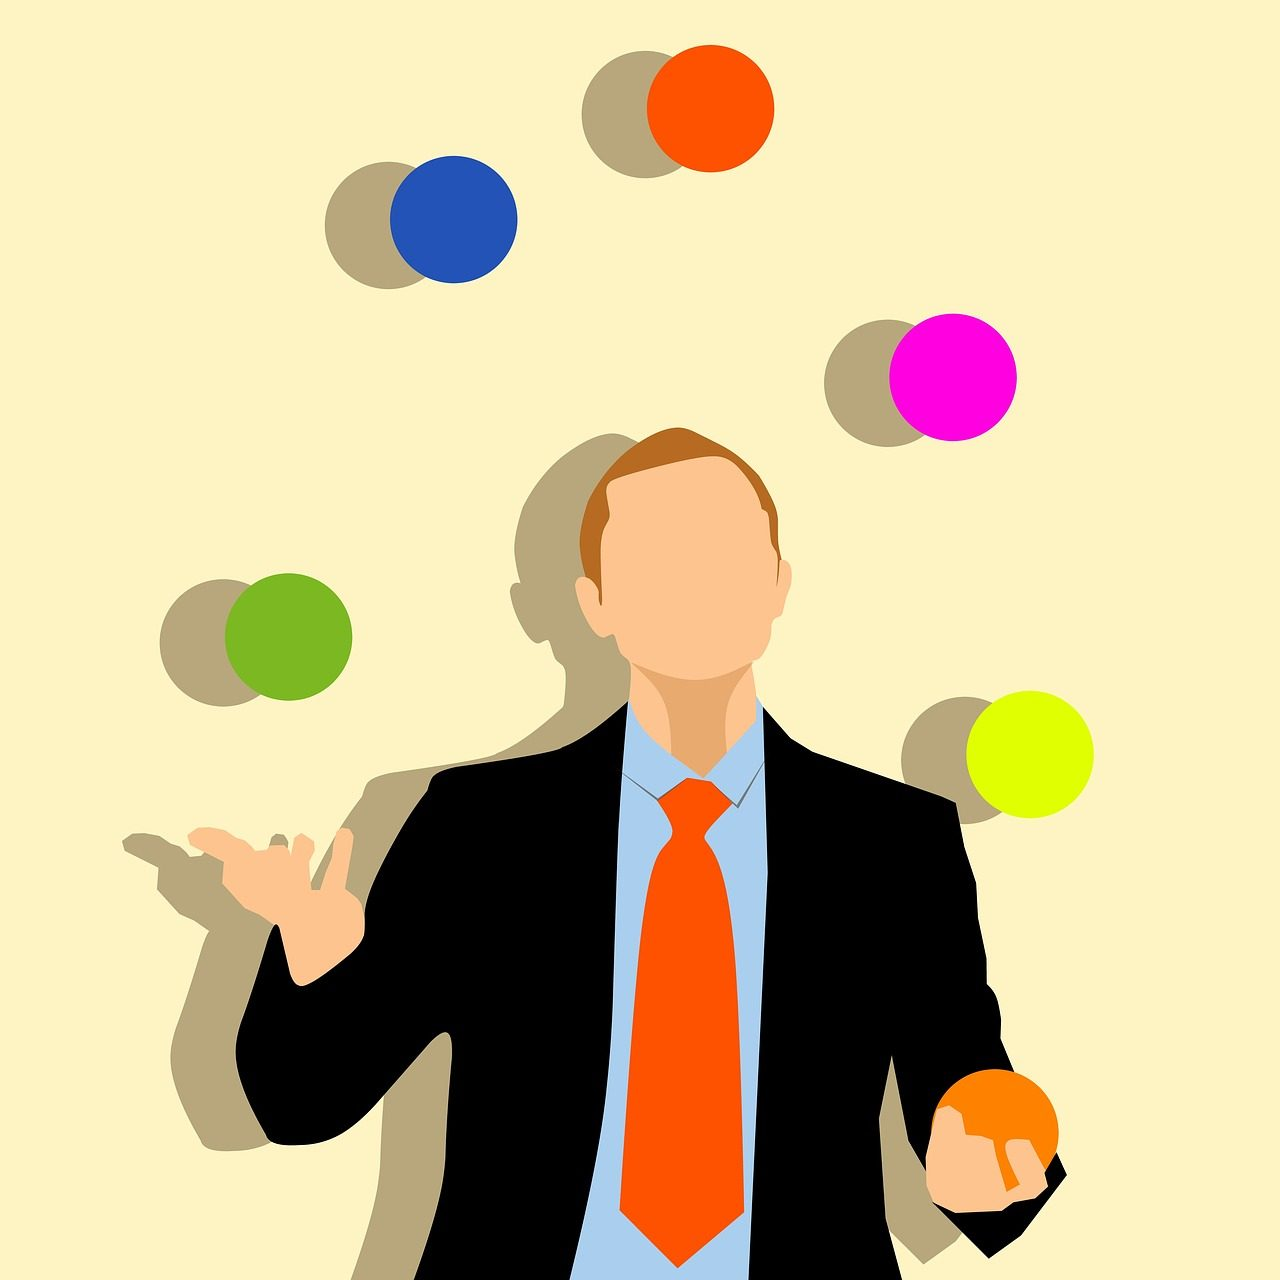 business-juggle-1280x1280.jpg